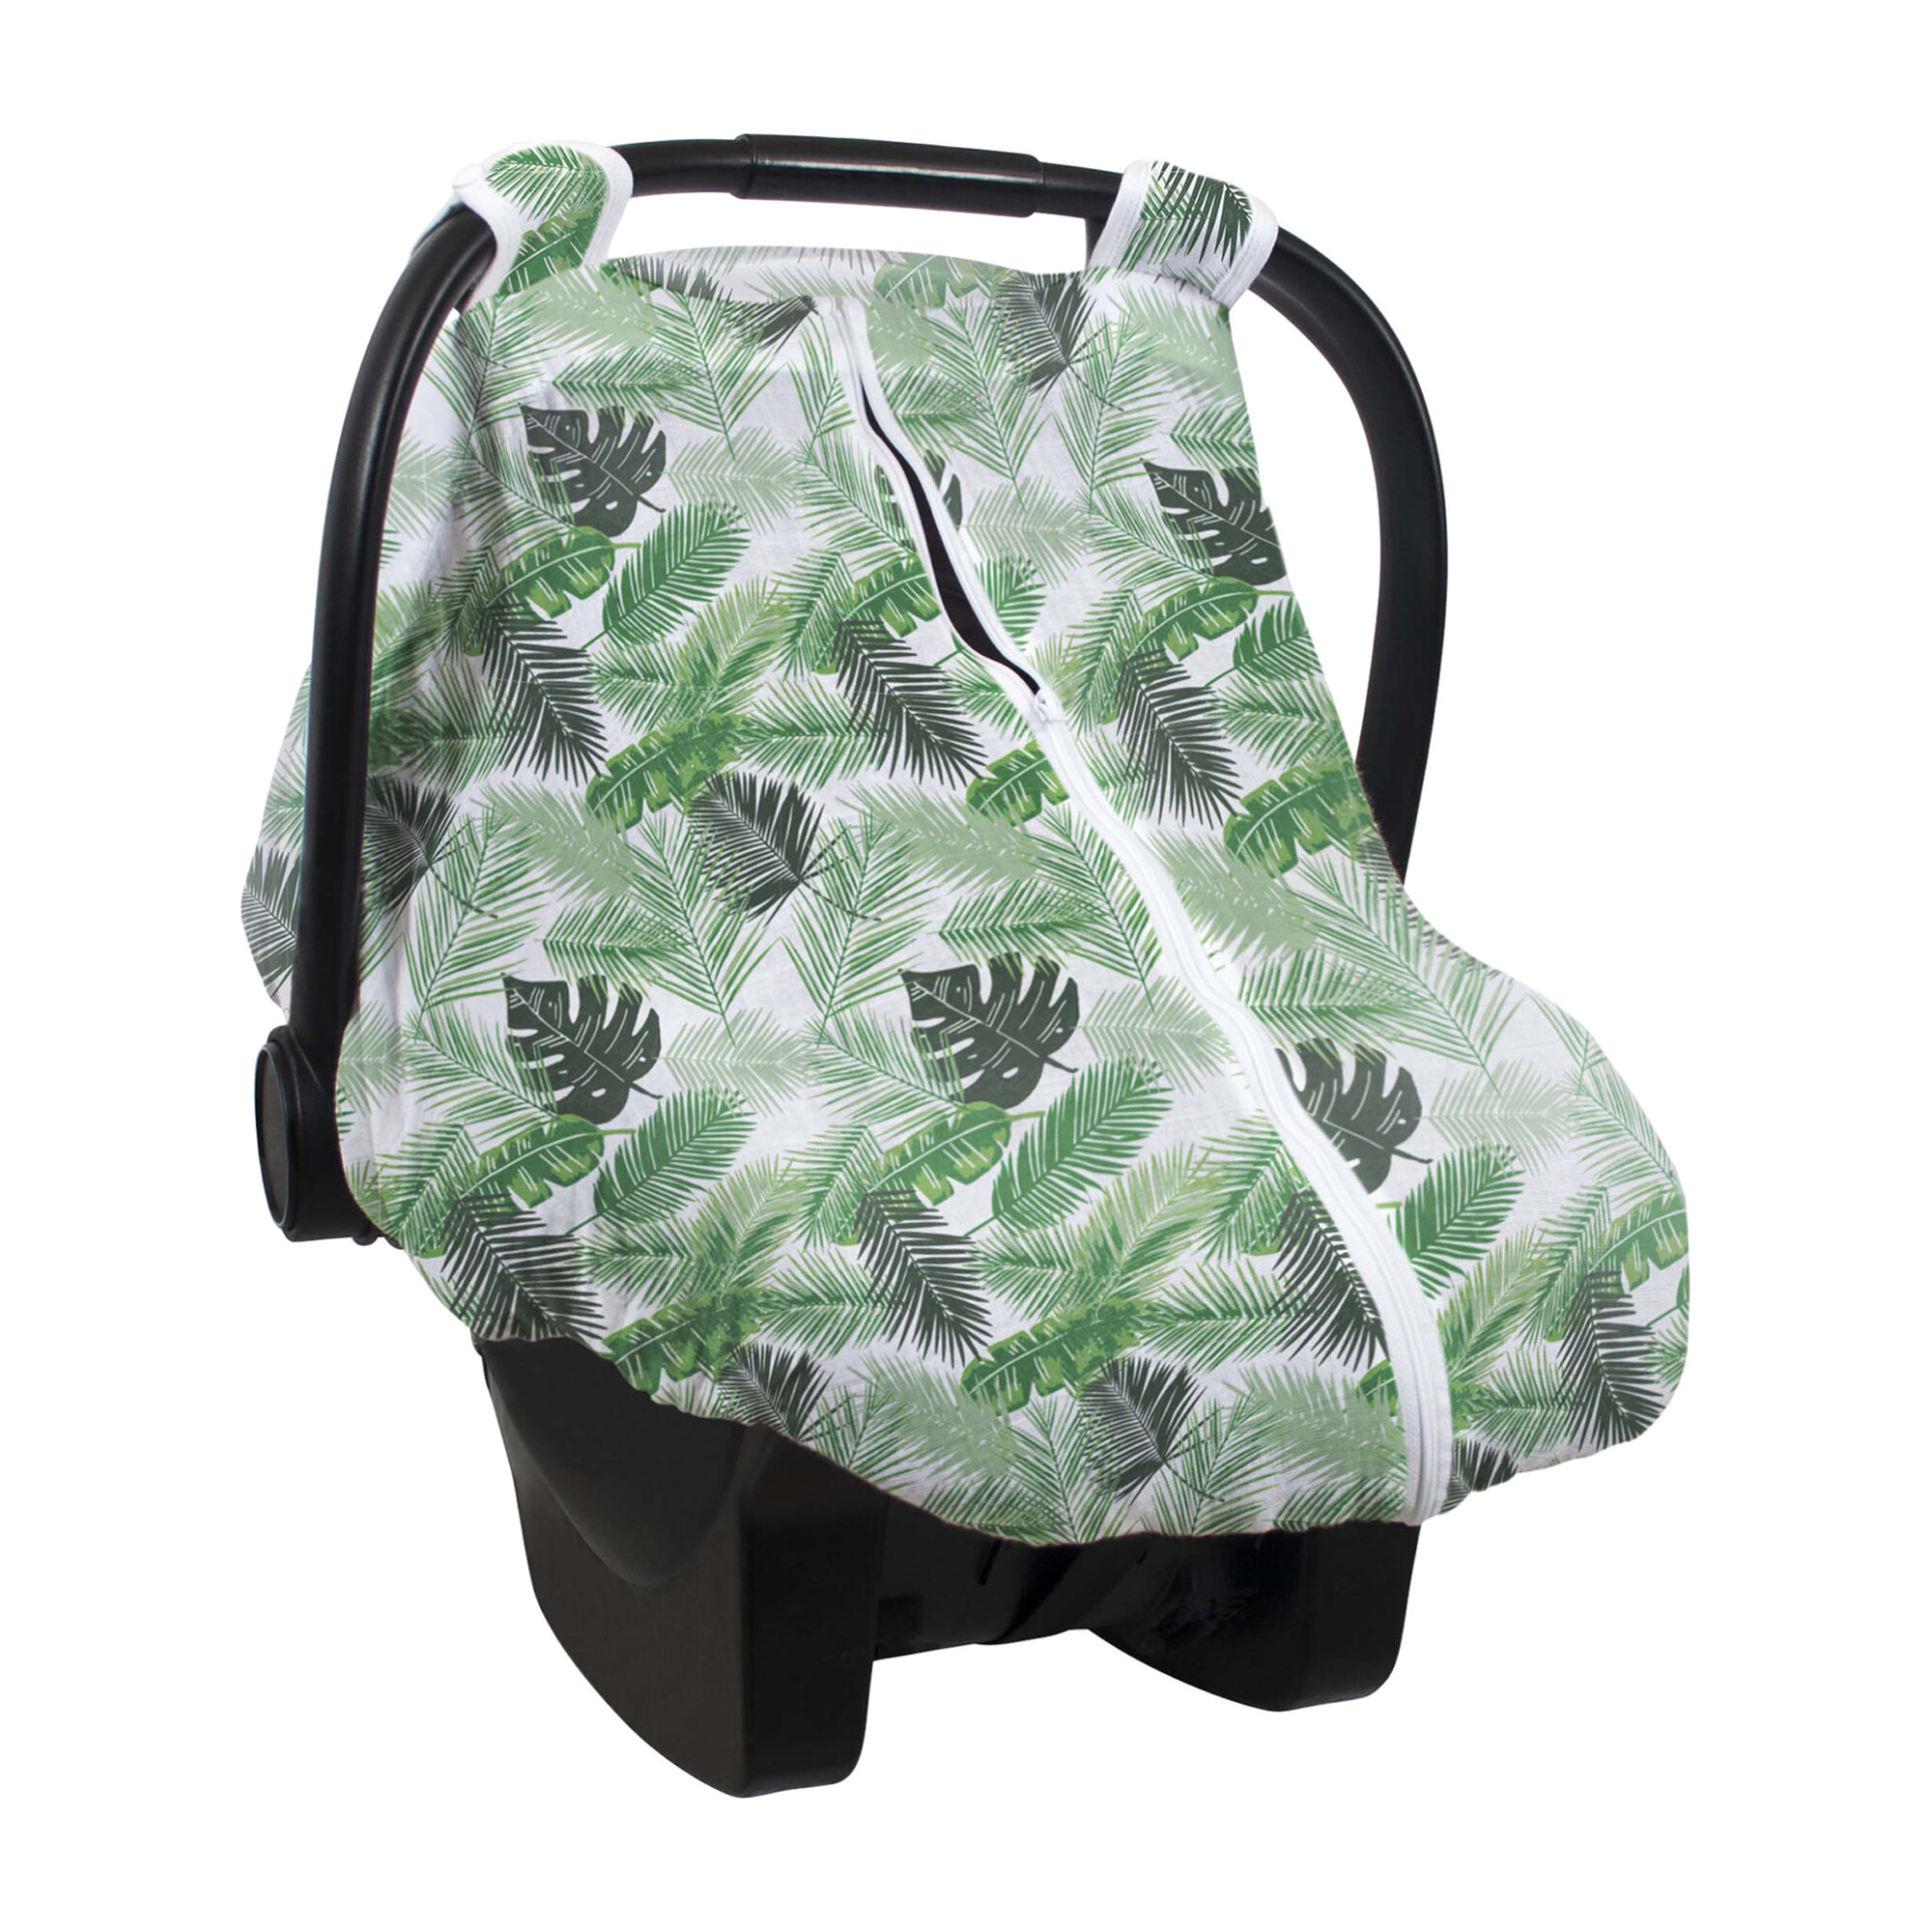 Car Seat Cover, Palms